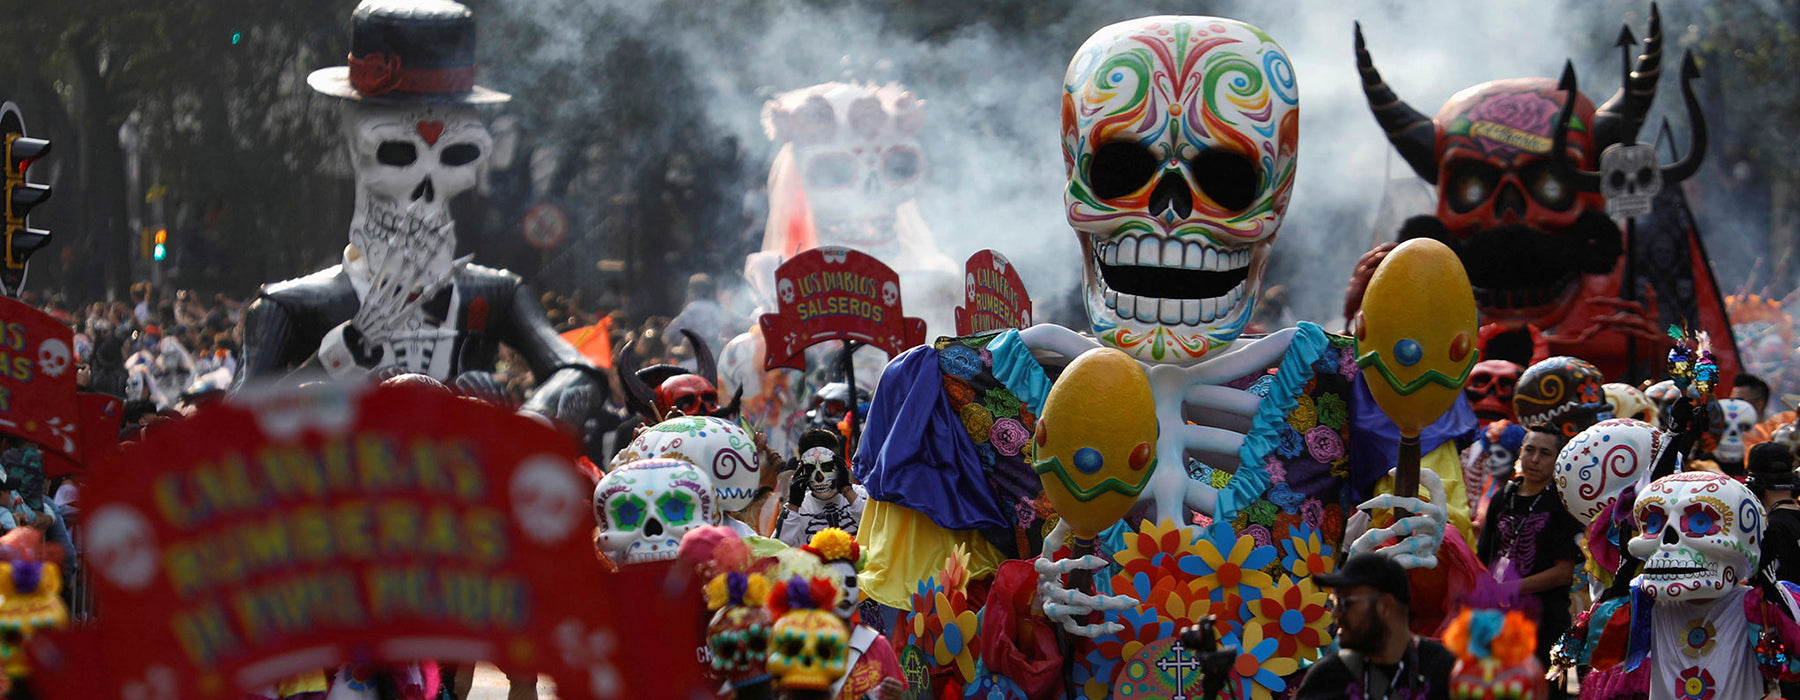 Day Of The Dead Festligheter